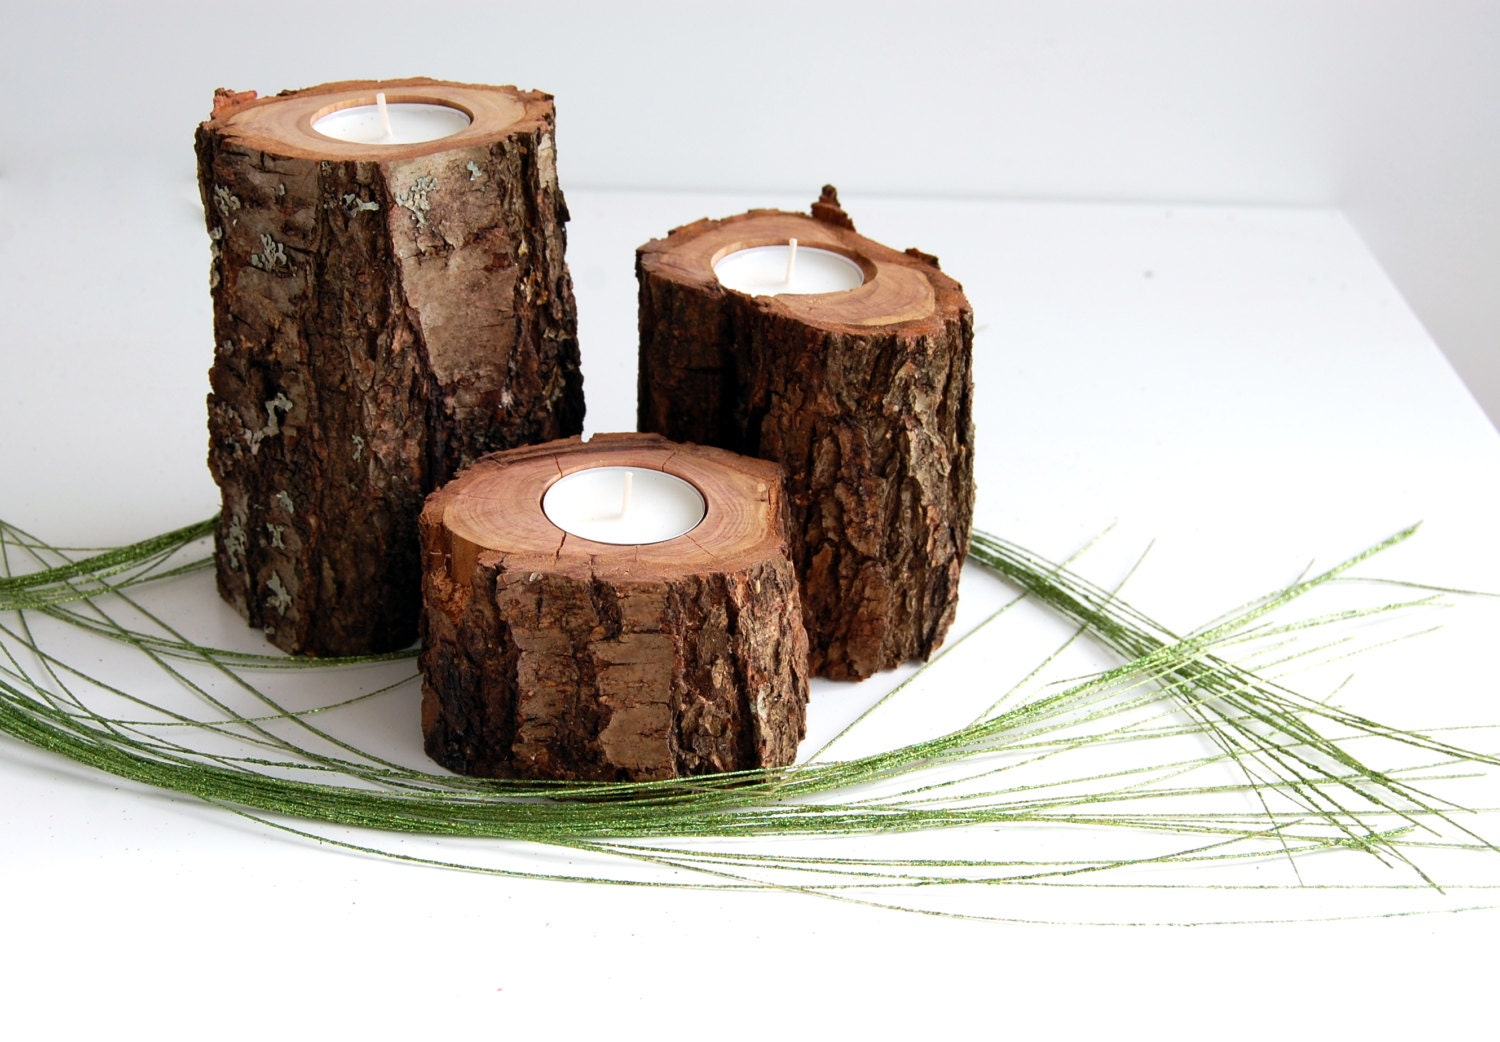 Tree Branch Candleholders Set Of 3 Wooden Tealight Holders Hygge Decor Rustic Home